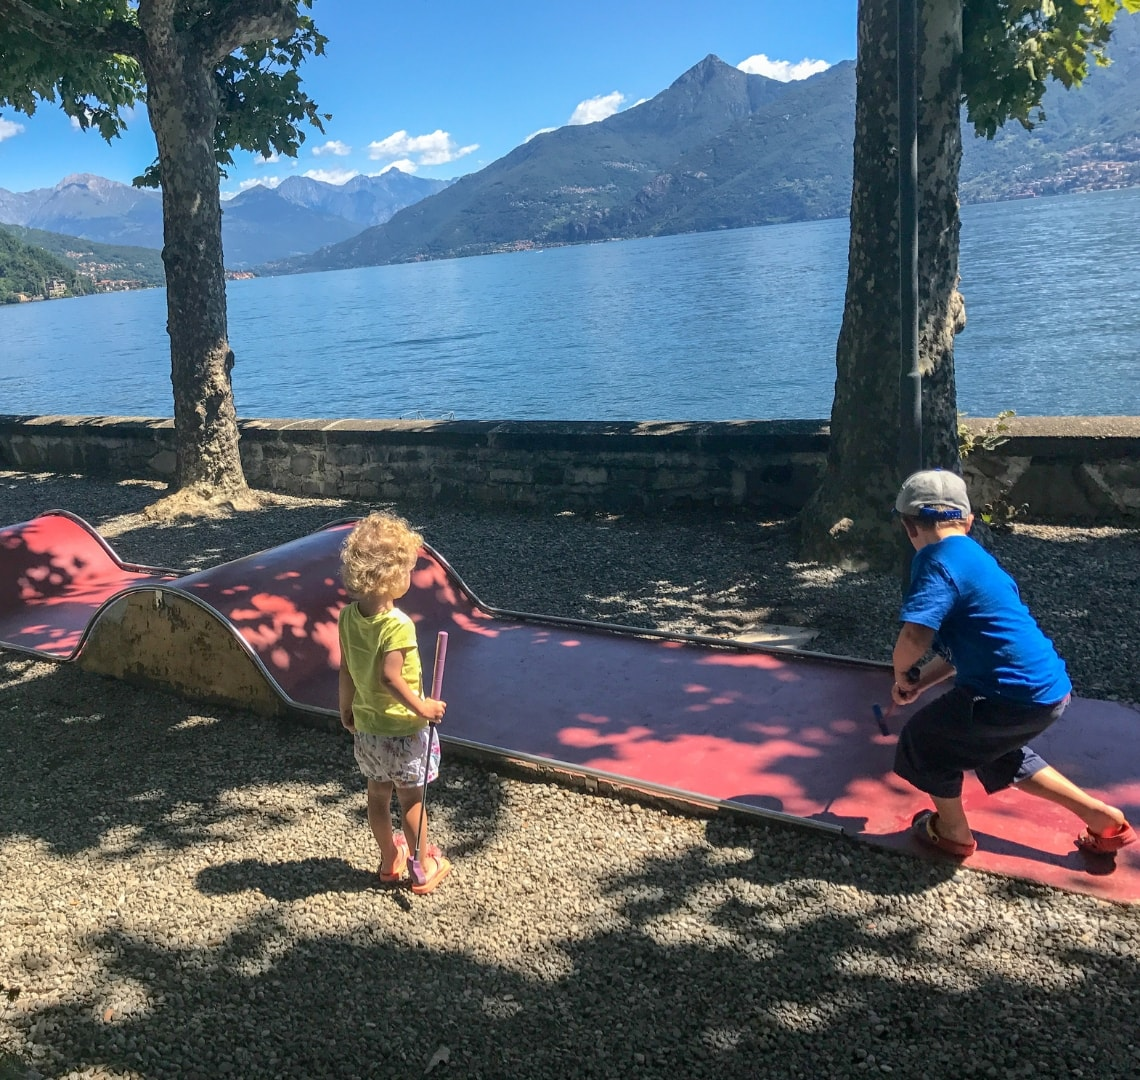 How to have an epic family holiday - the Things playing mini golf in Lake Como Italy with the beautiful lakes and mountains in the background